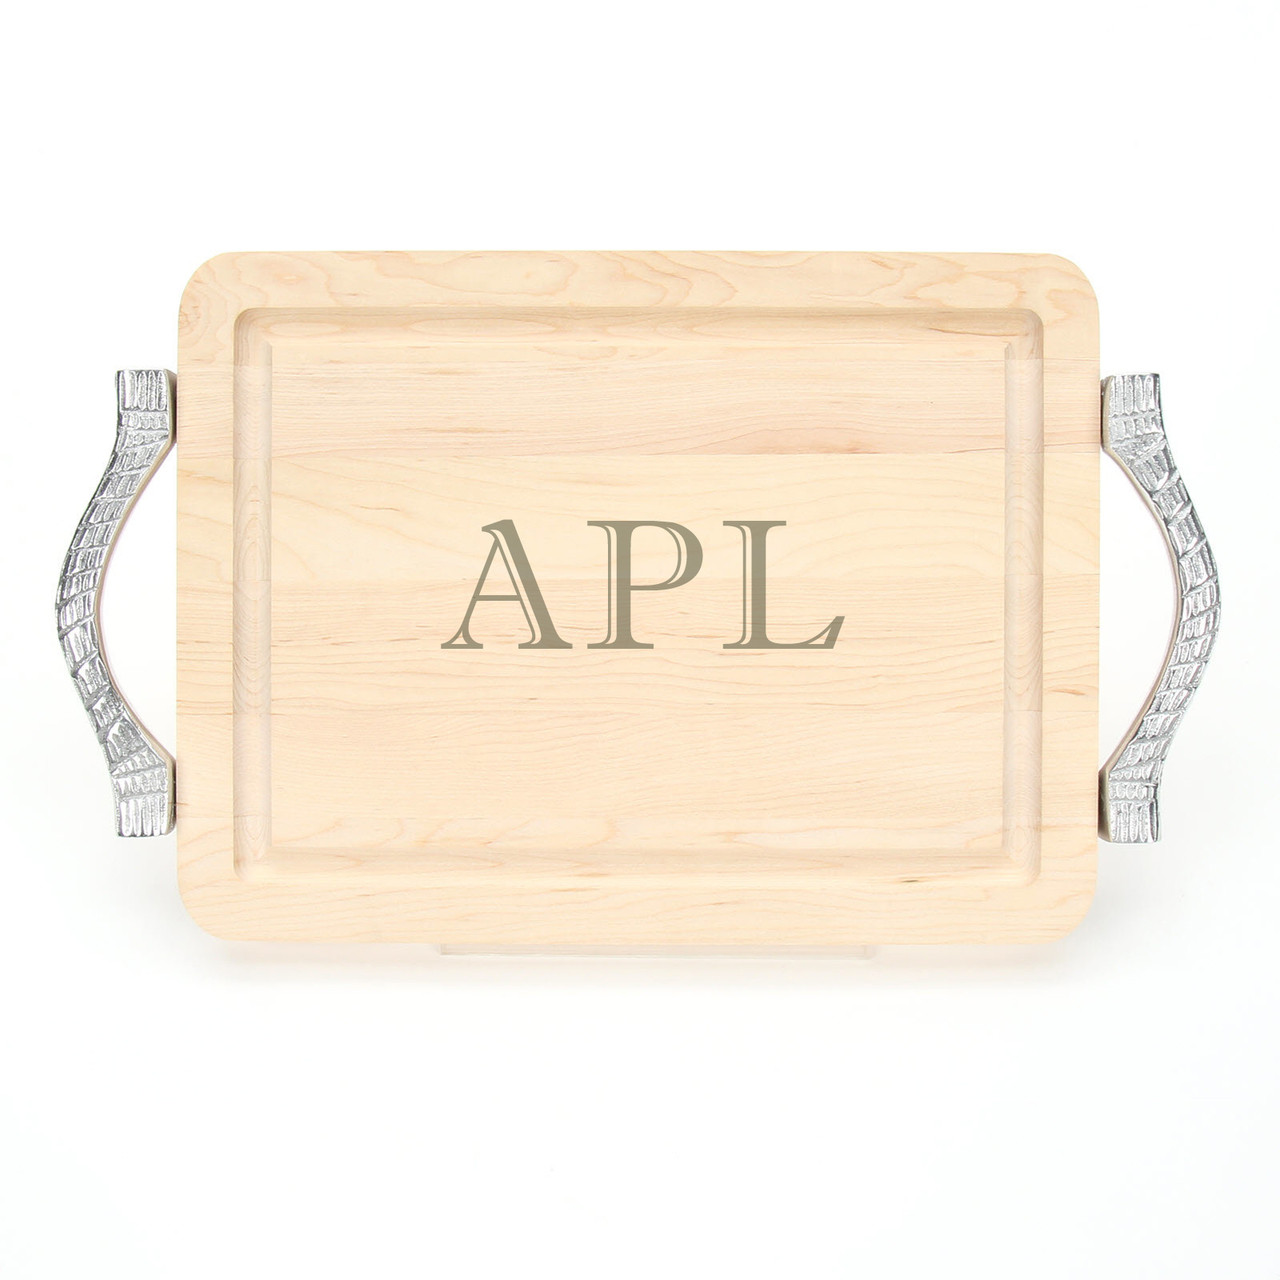 9 X 12 Maple Rectangle Cutting Board Rope Handles Laser Engraved Monogram